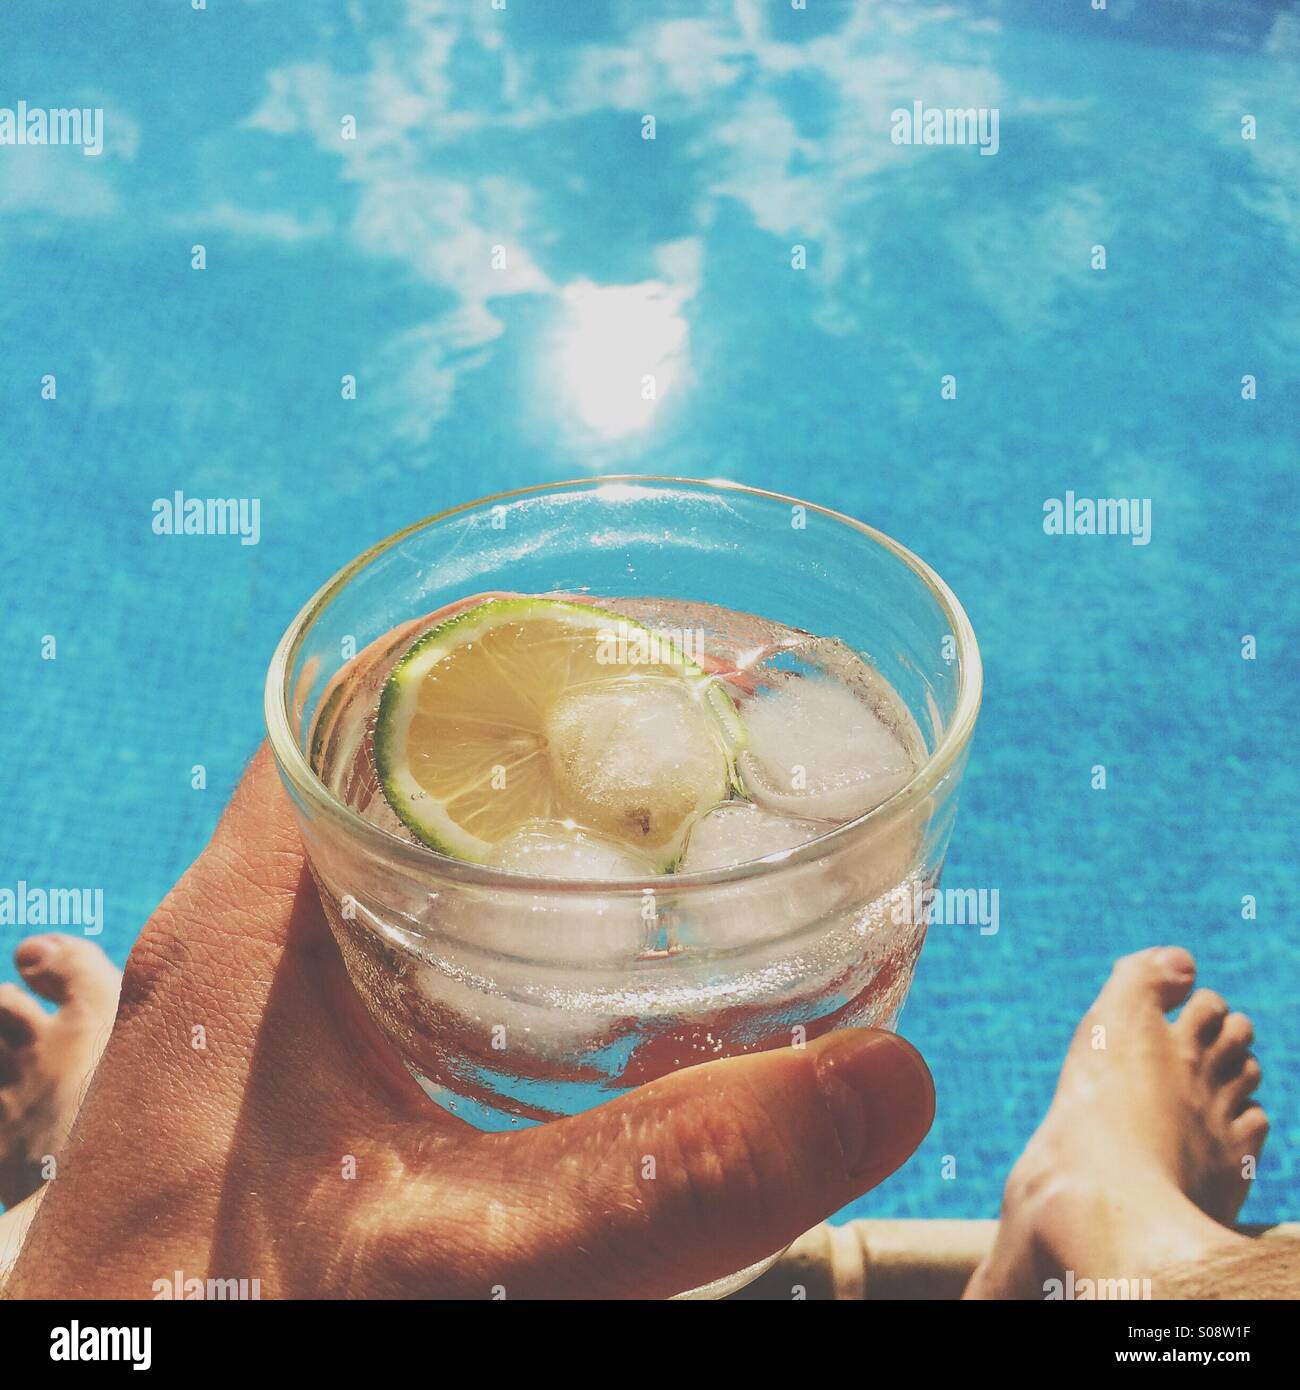 Poolside gin and tonic - Stock Image